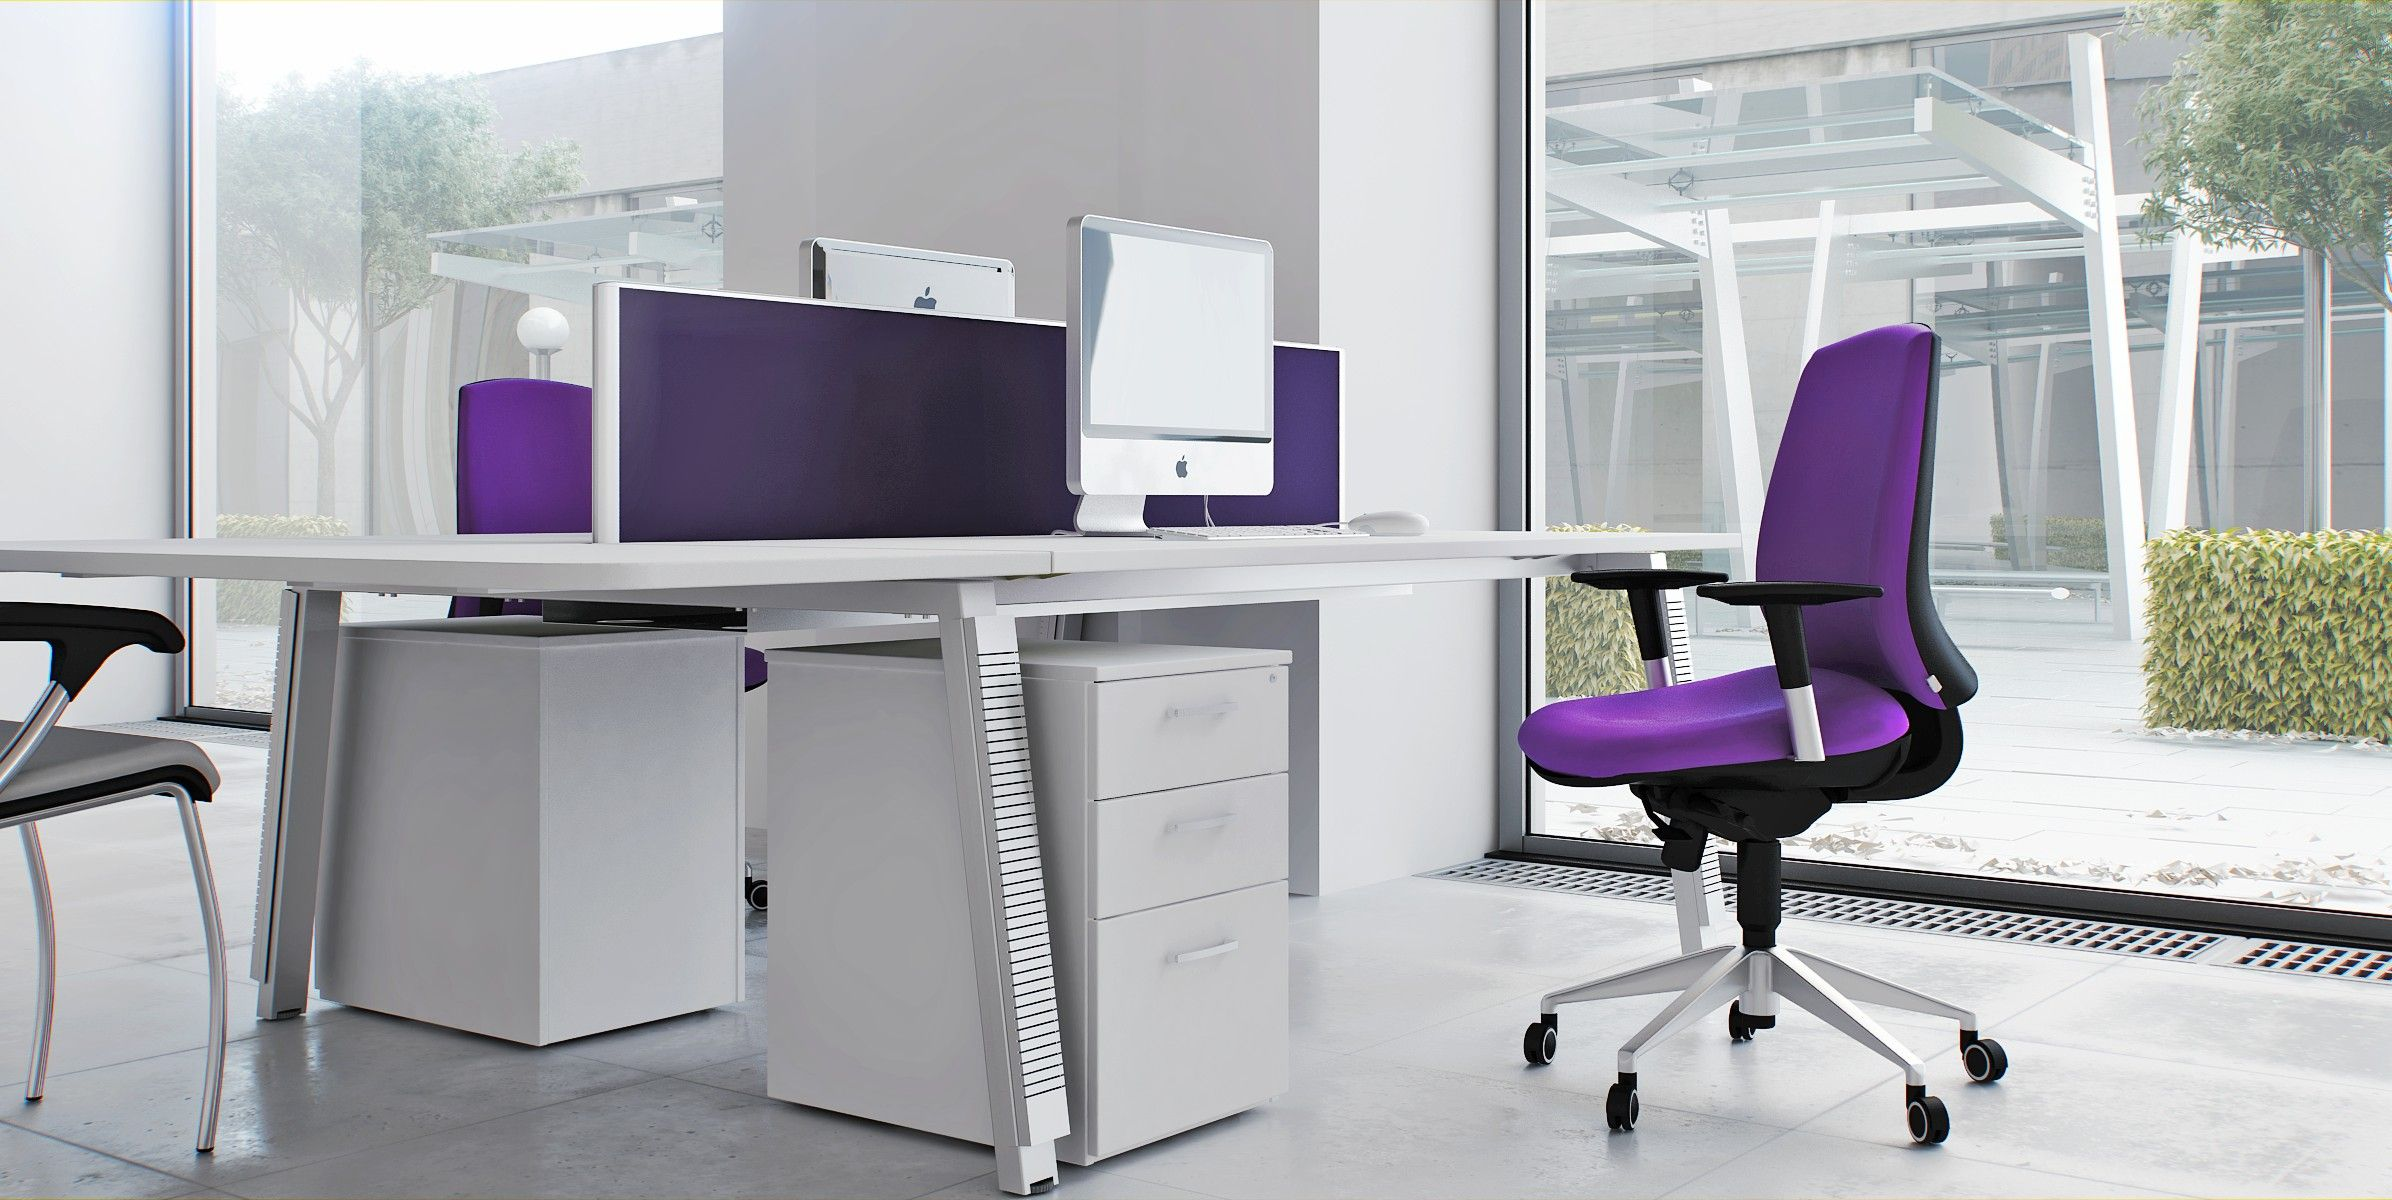 Captivating modern office chair with soft purple fabric for Contemporary office chairs modern